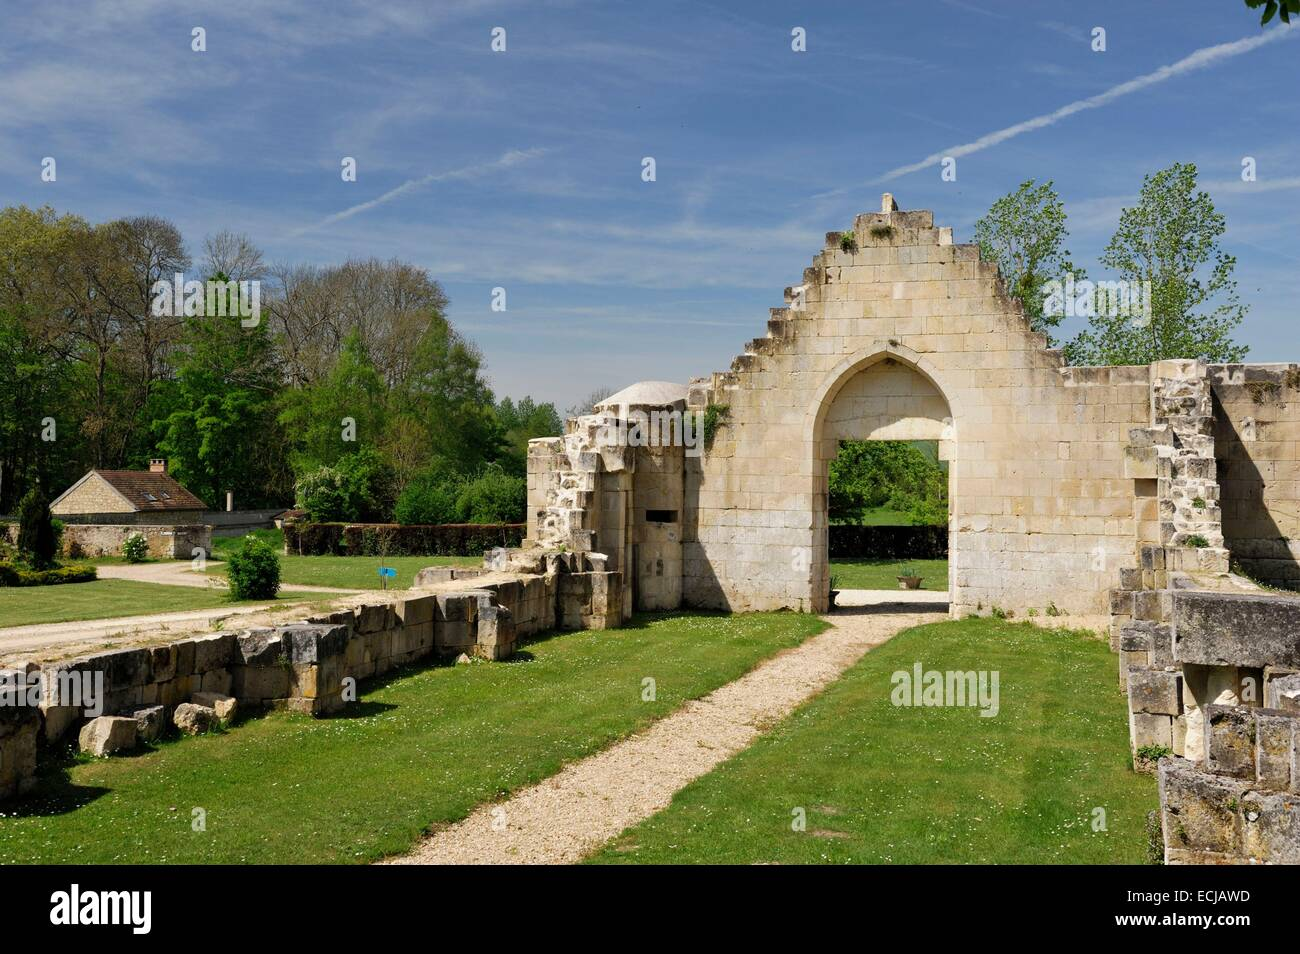 France, Aisne, Brumetz, Cerfroid convent or house of the Trinity Cerfroid founded by Saint John of Matha Provencal - Stock Image